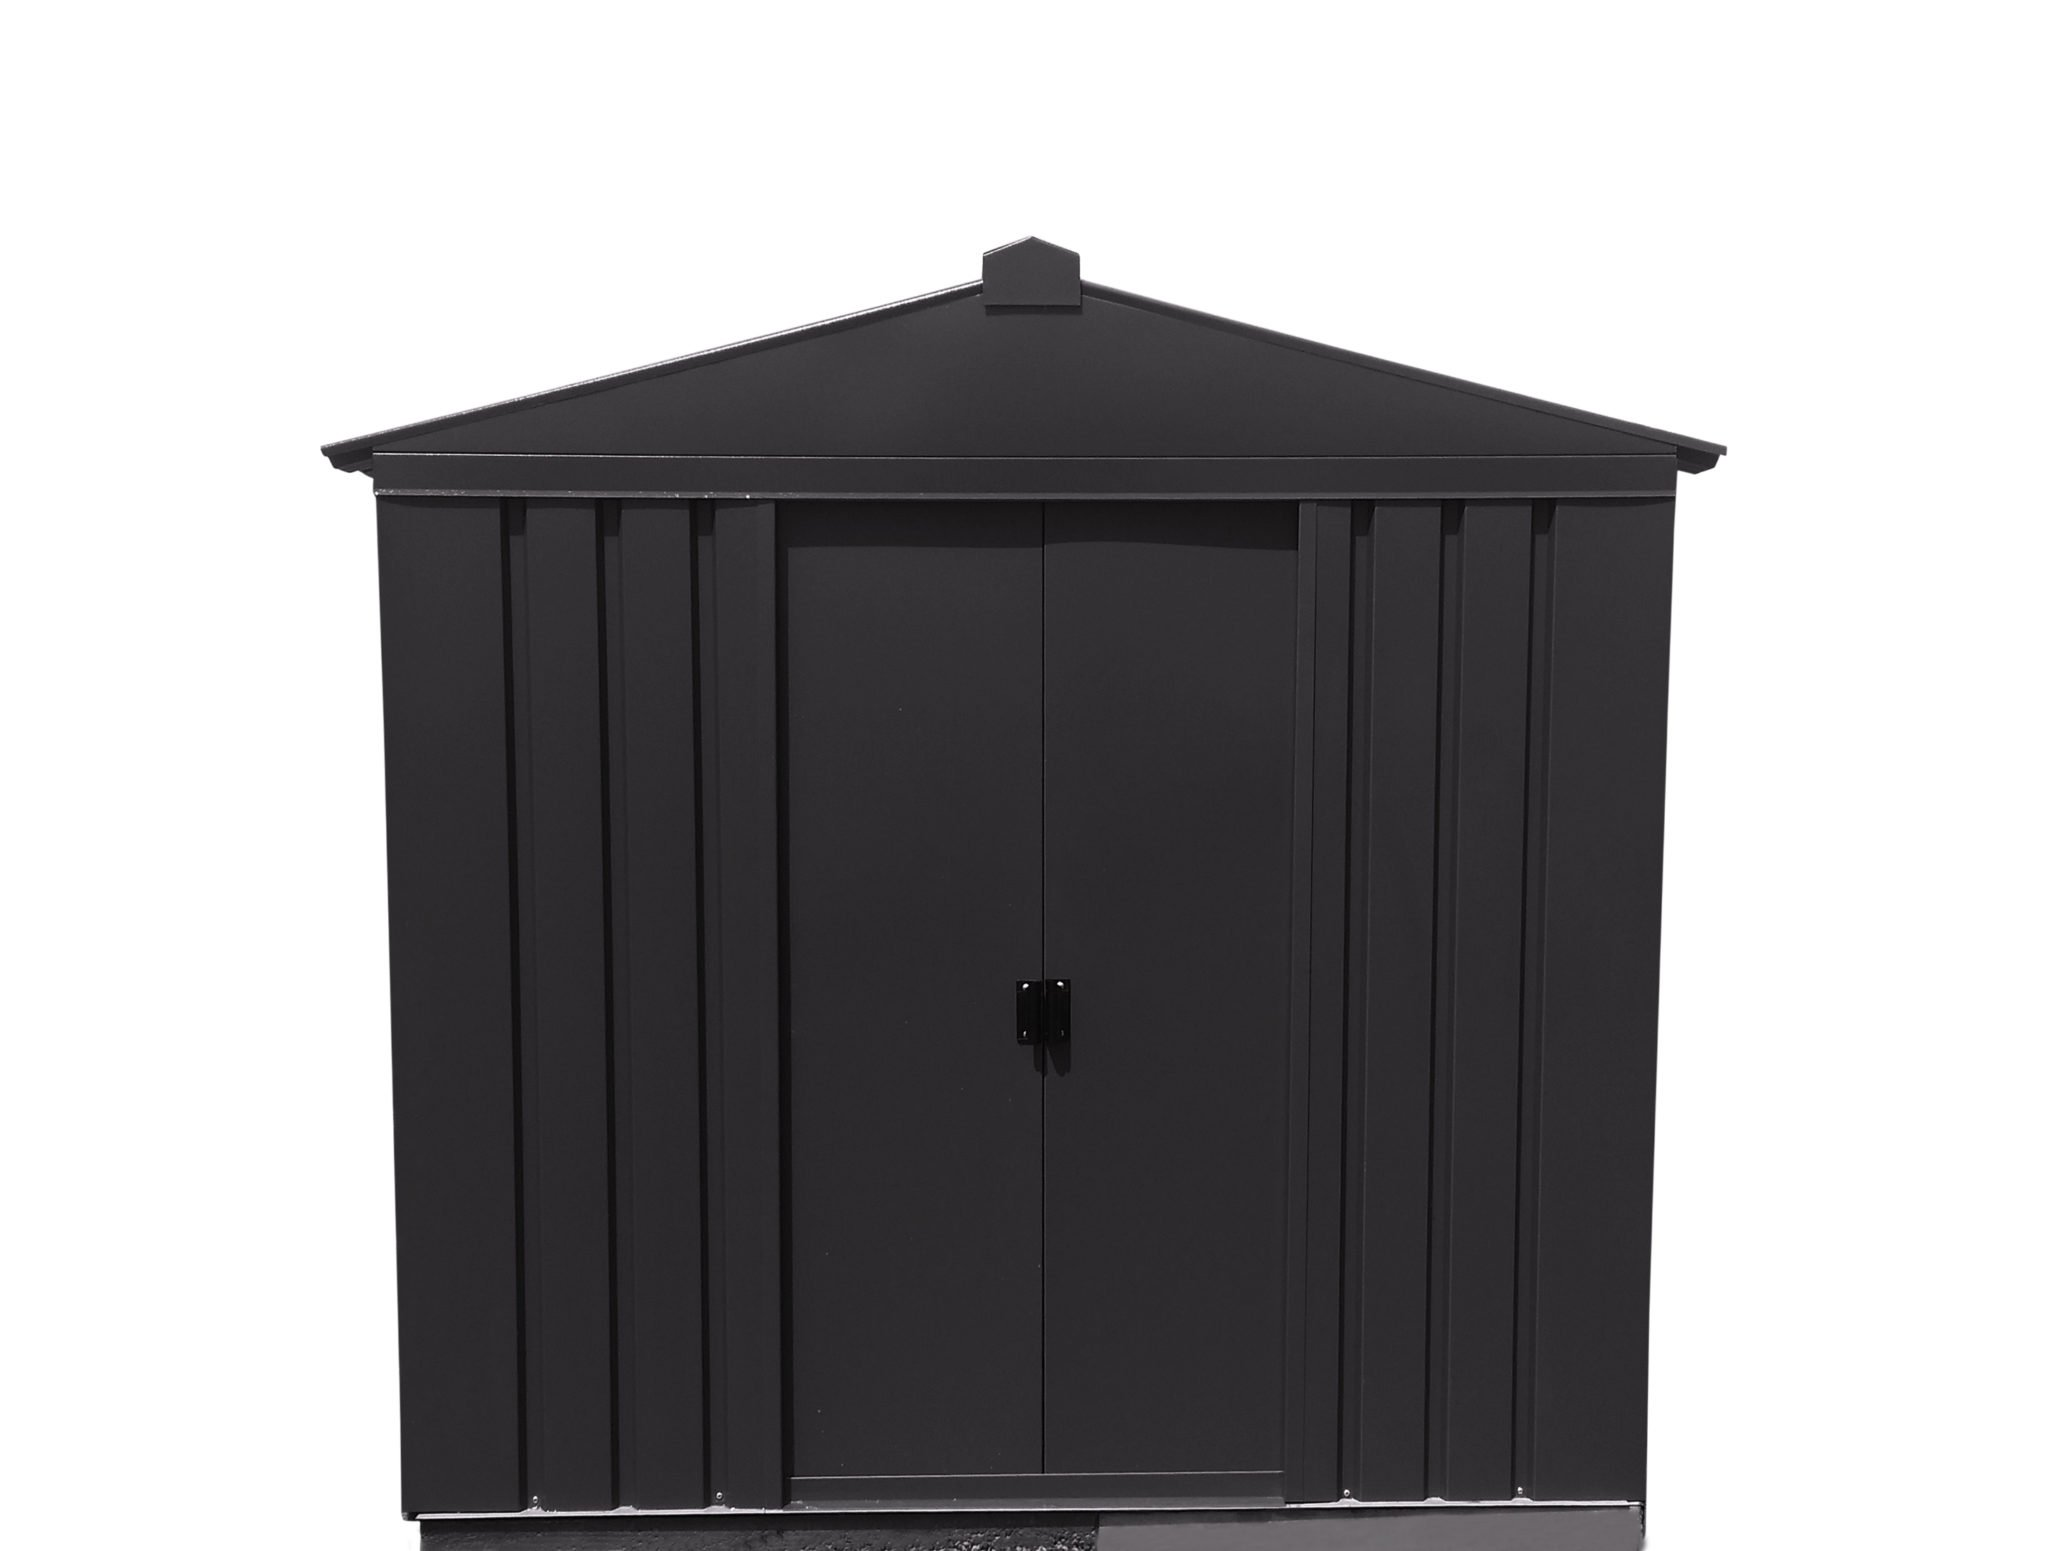 Anthracite metal shed